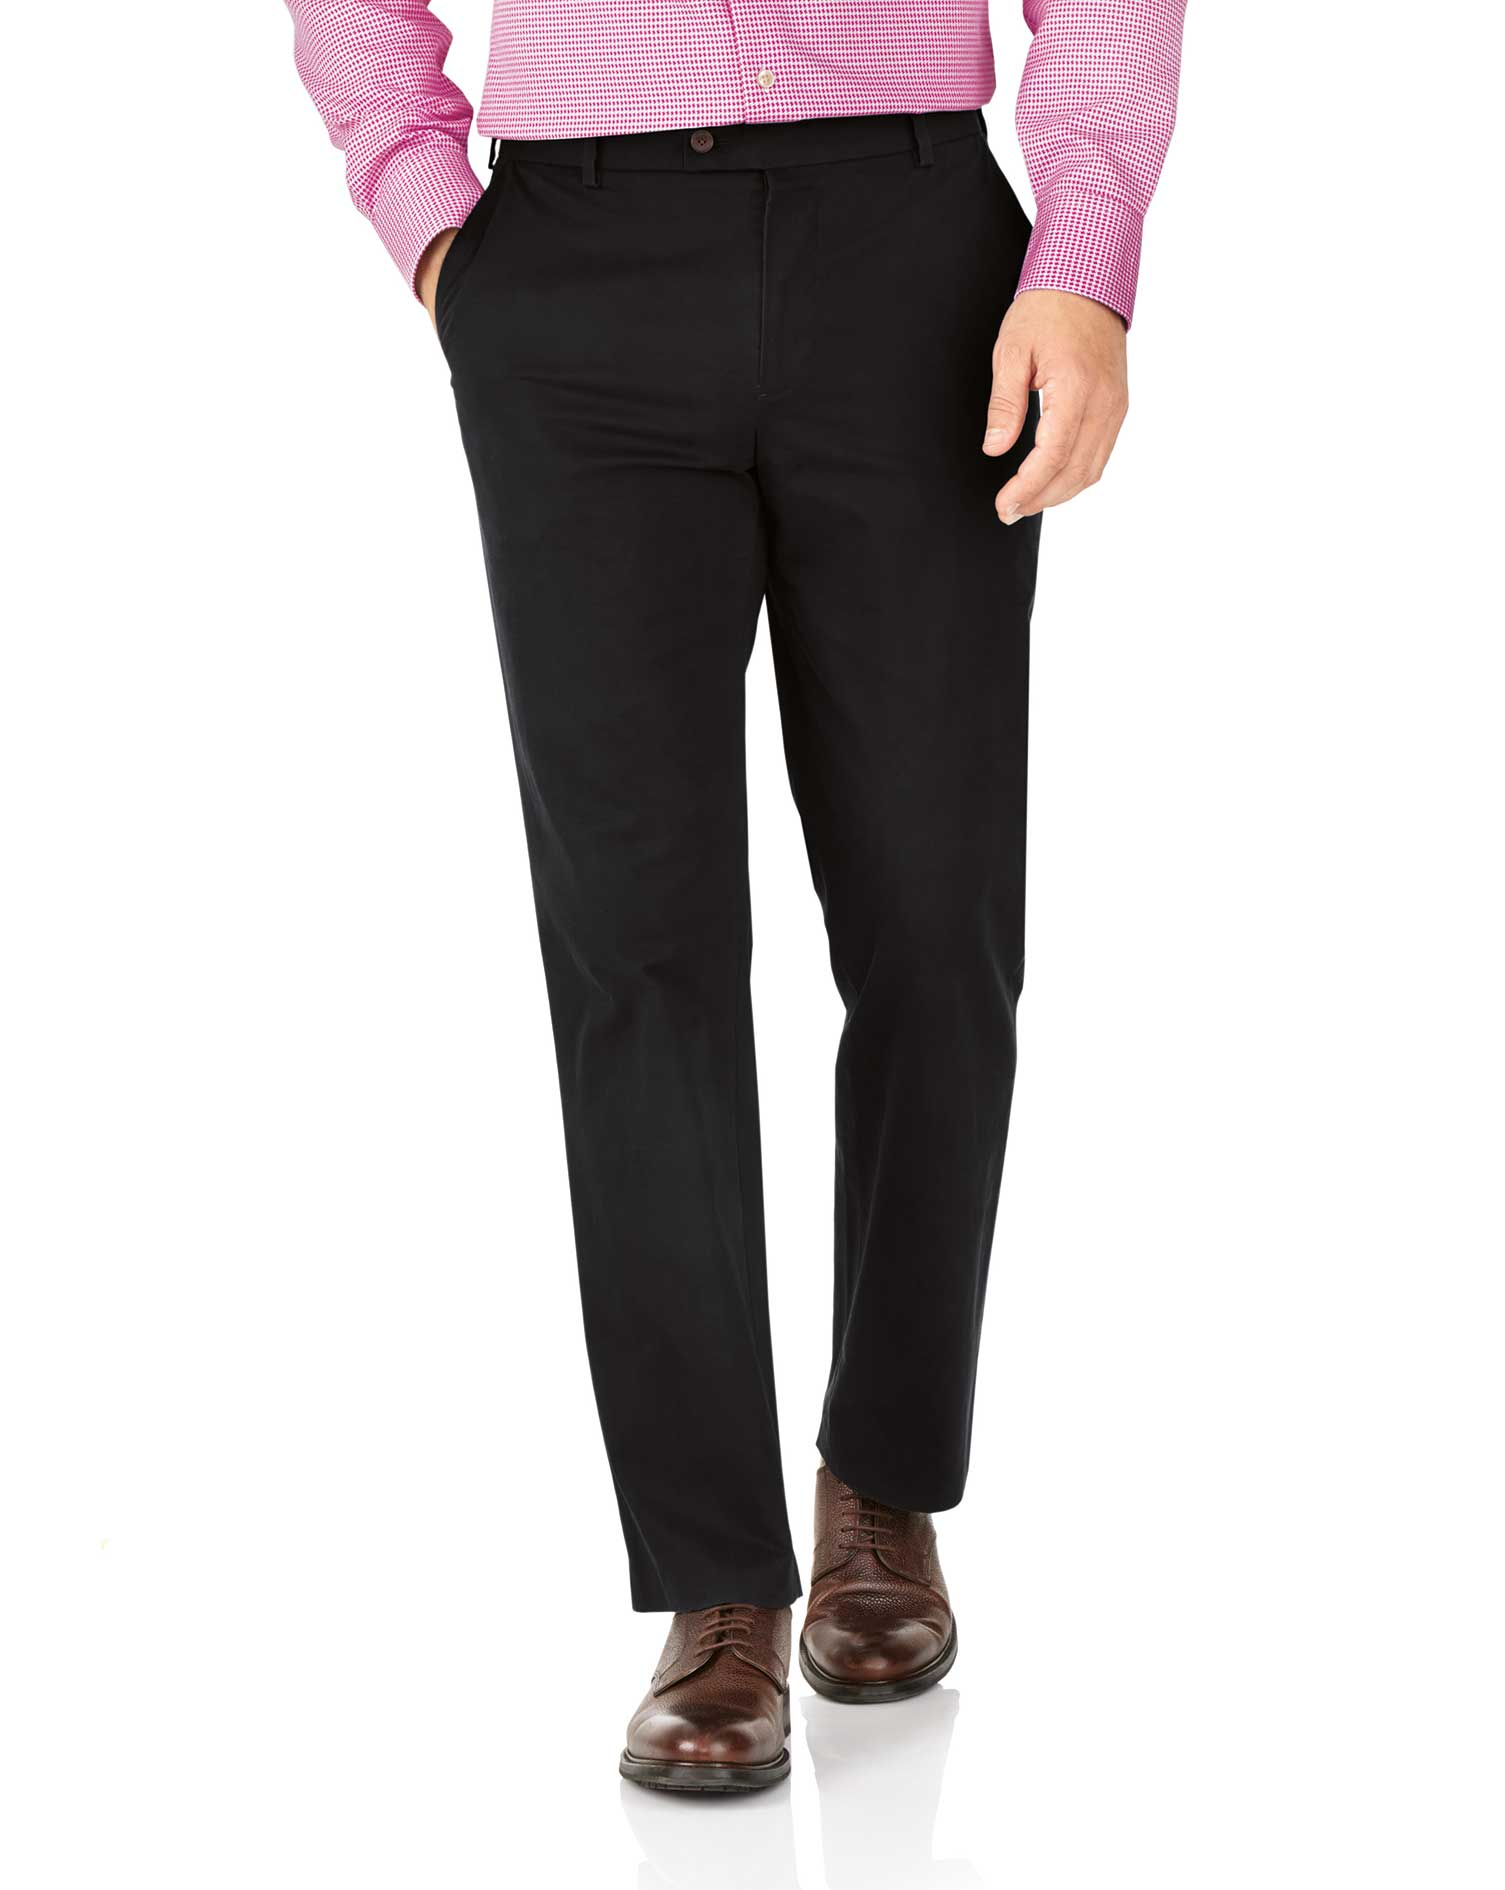 Black Classic Fit Stretch Chino Size W36 L32 by Charles Tyrwhitt